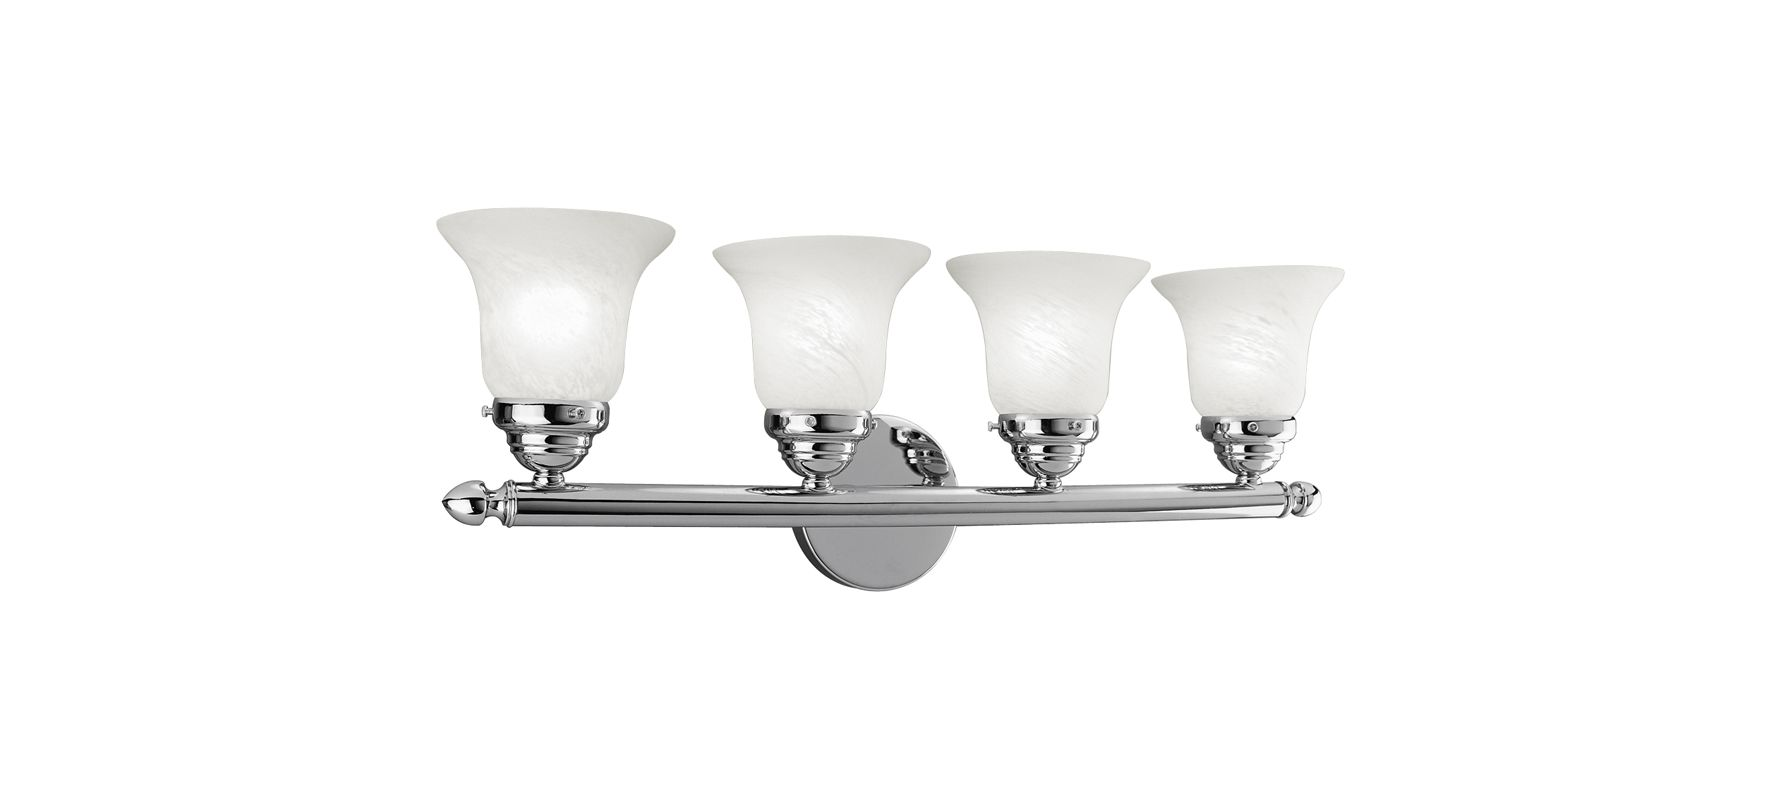 Livex Lighting 1064P Neptune 4 Light Bathroom Vanity Light Chrome